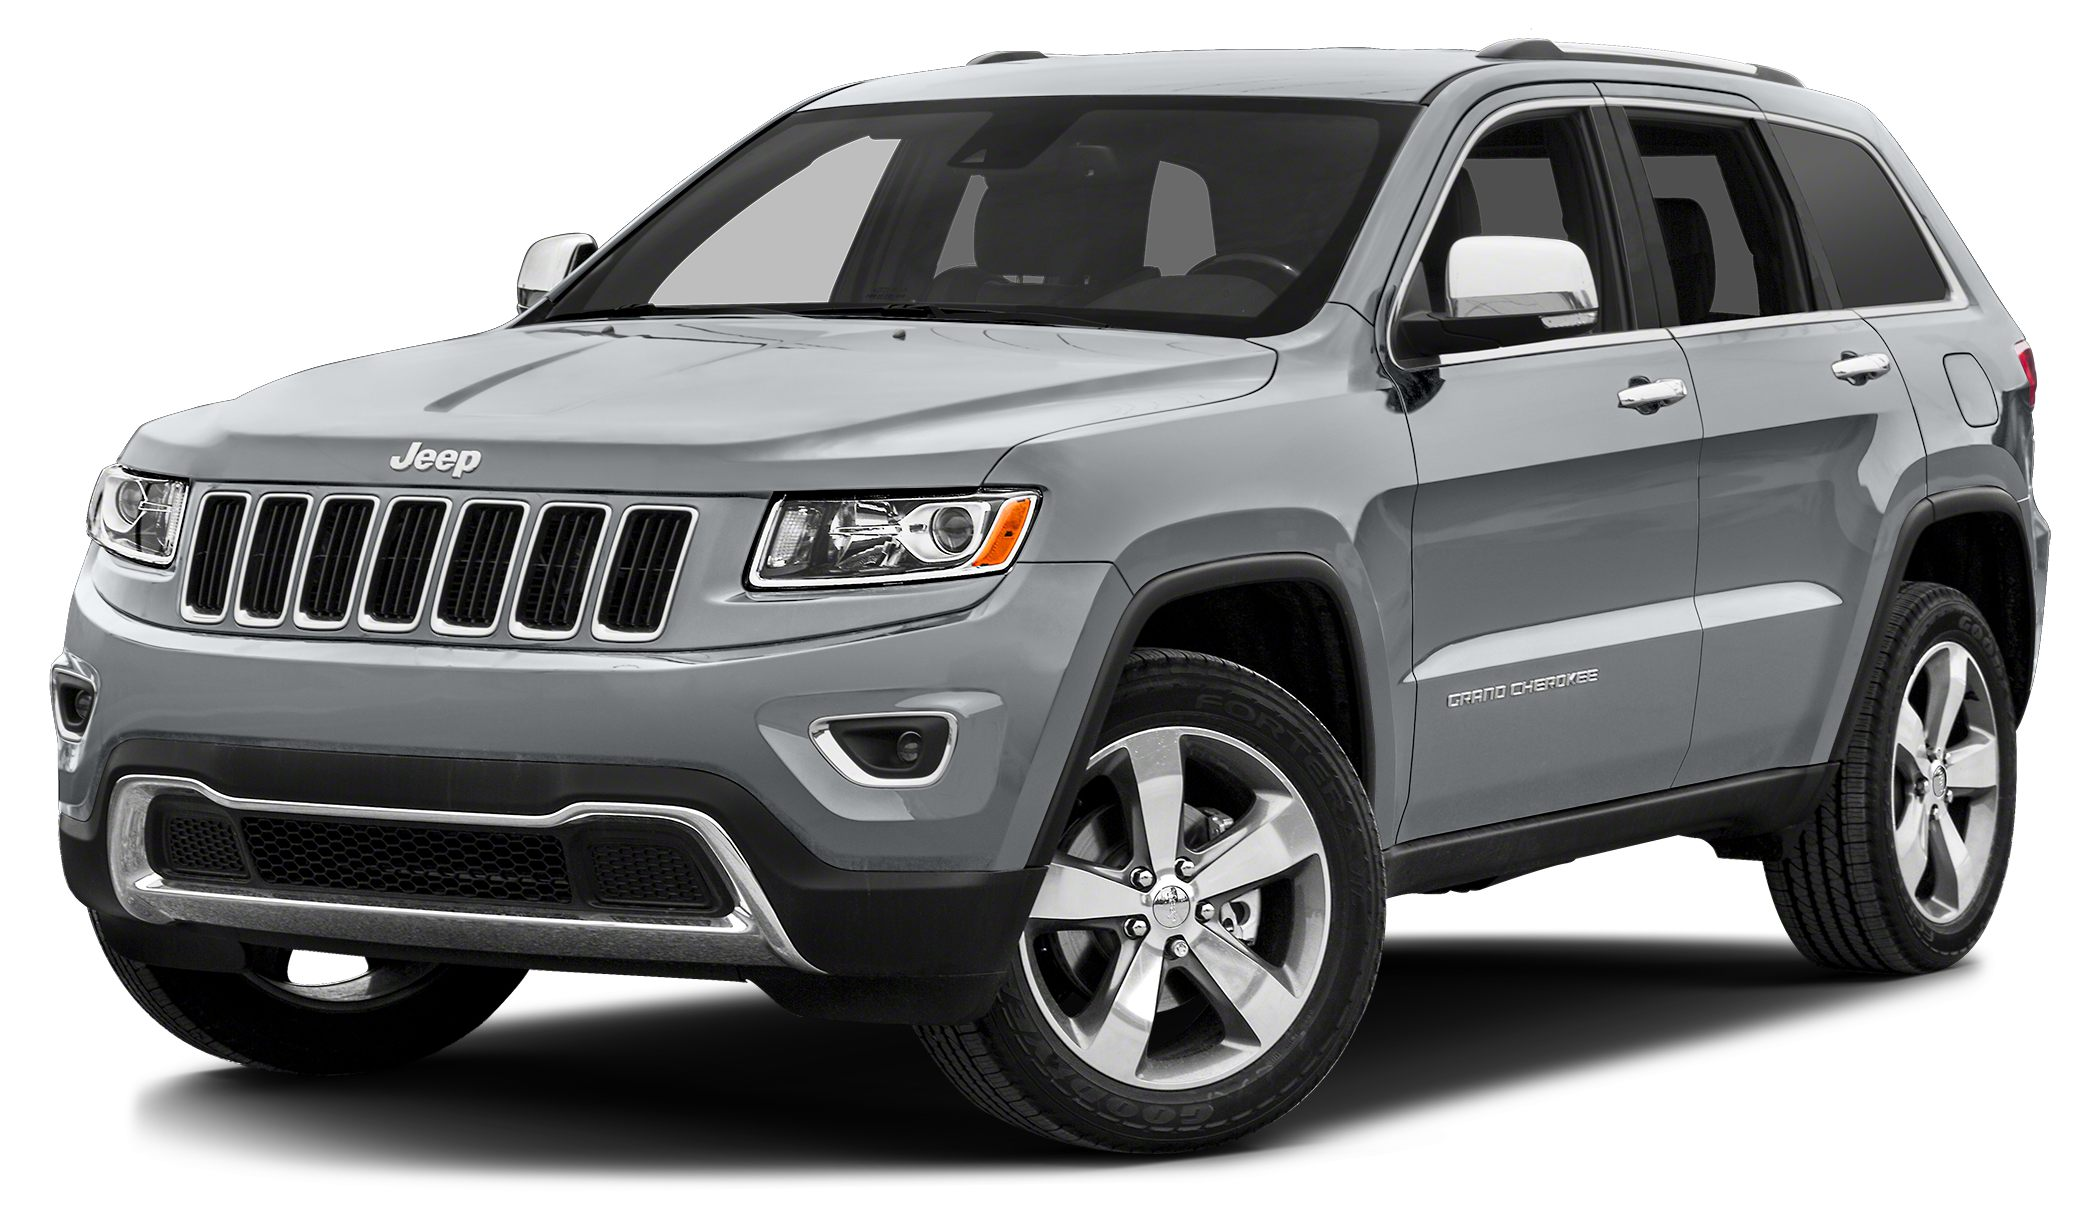 2014 Jeep Grand Cherokee Limited Snatch a deal on this 2014 Jeep Grand Cherokee Limited before som